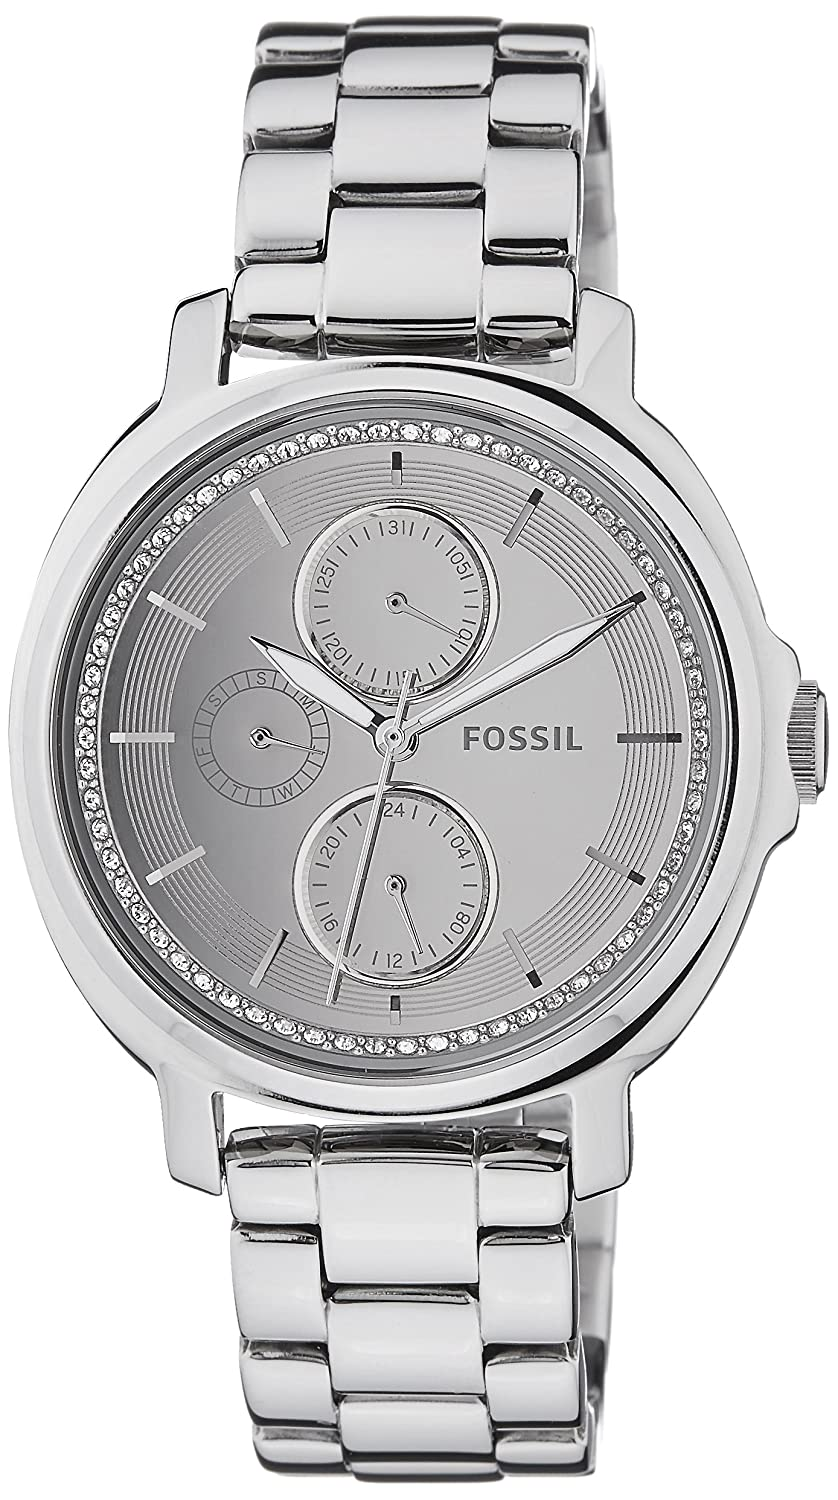 Amazon.com: Fossil Womens ES3718 Chelsey Crystal-Accented Stainless Steel Watch with Link Bracelet: Watches